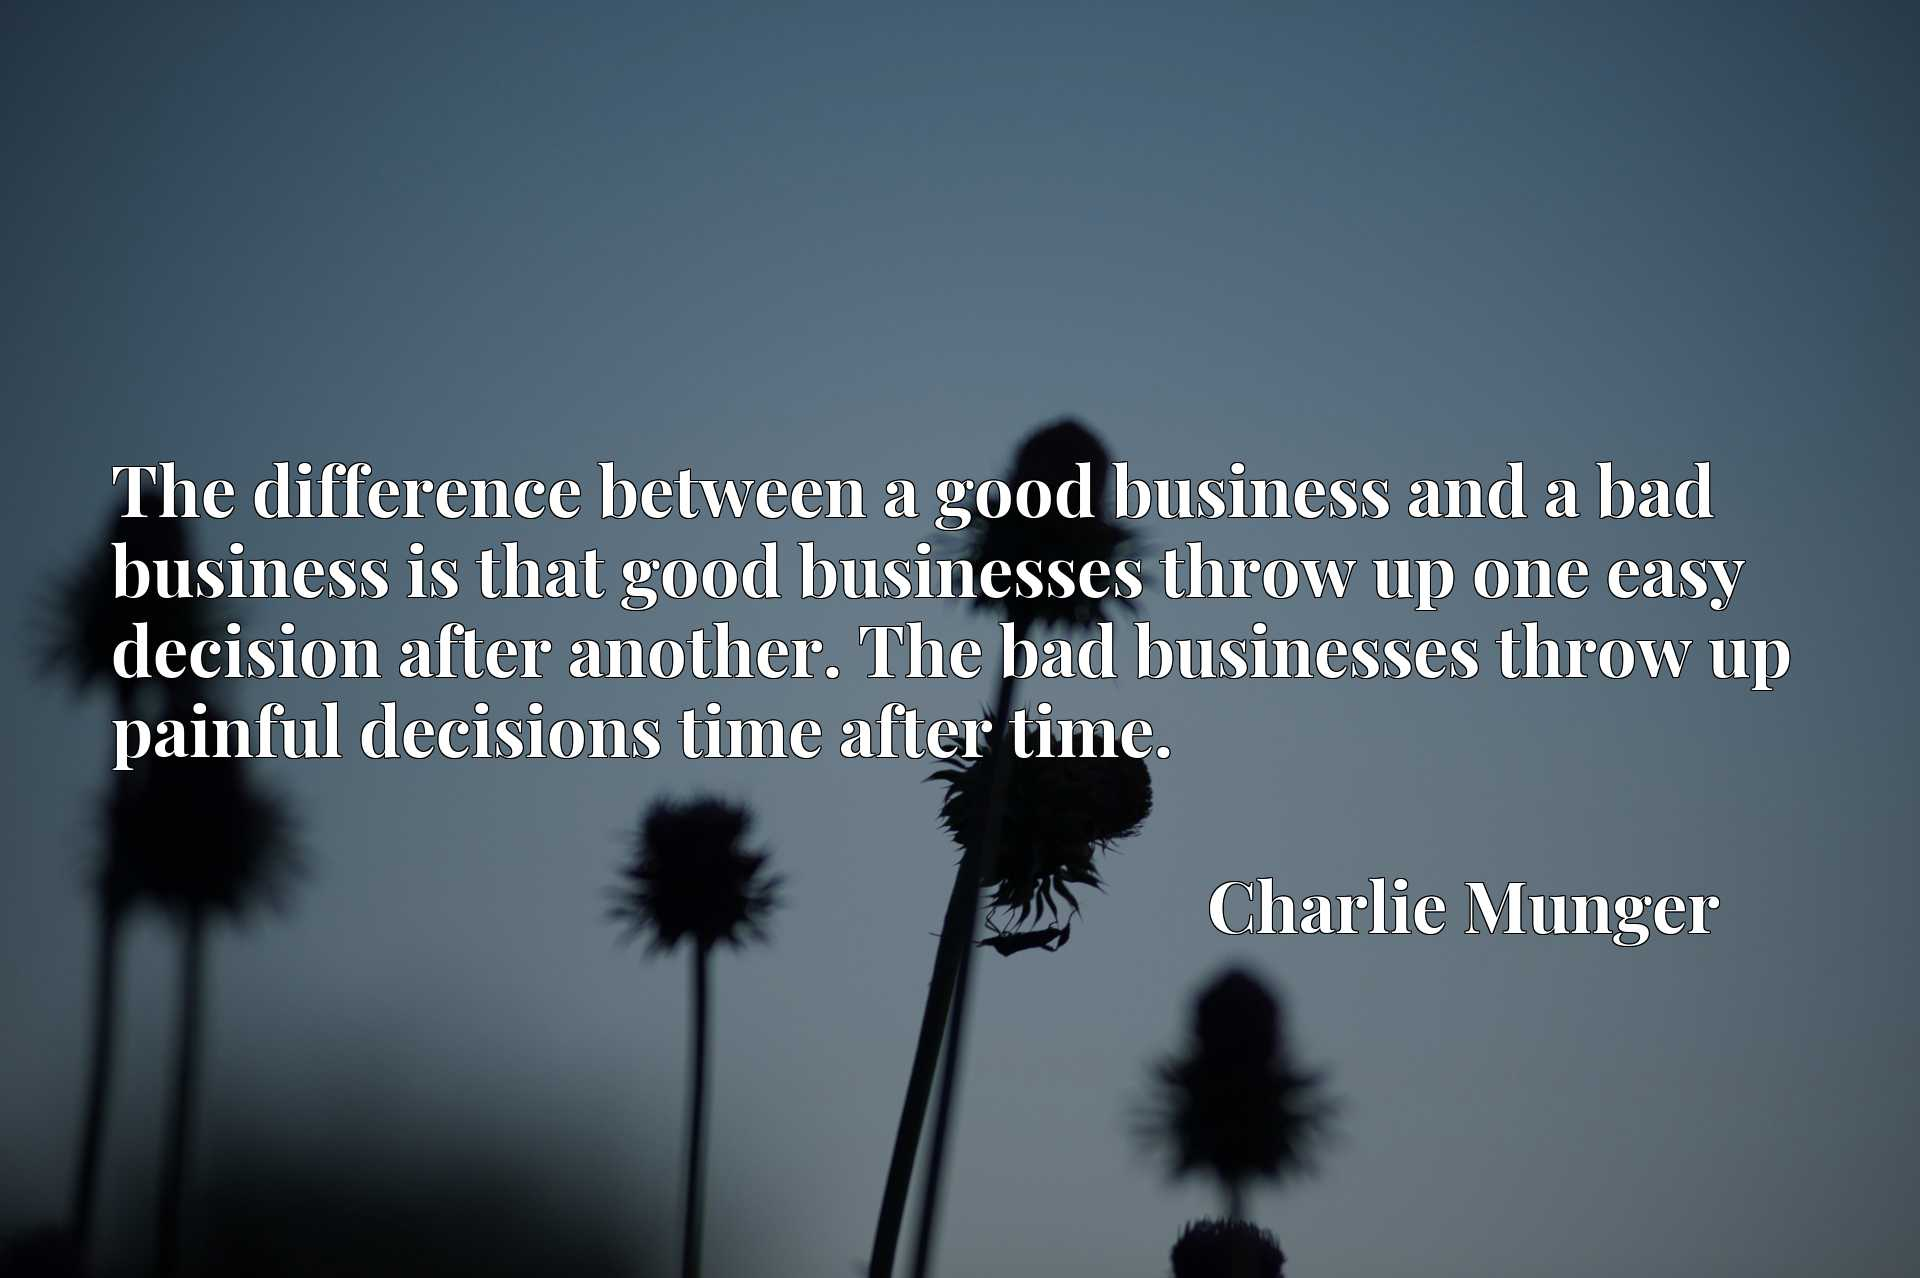 The difference between a good business and a bad business is that good businesses throw up one easy decision after another. The bad businesses throw up painful decisions time after time.